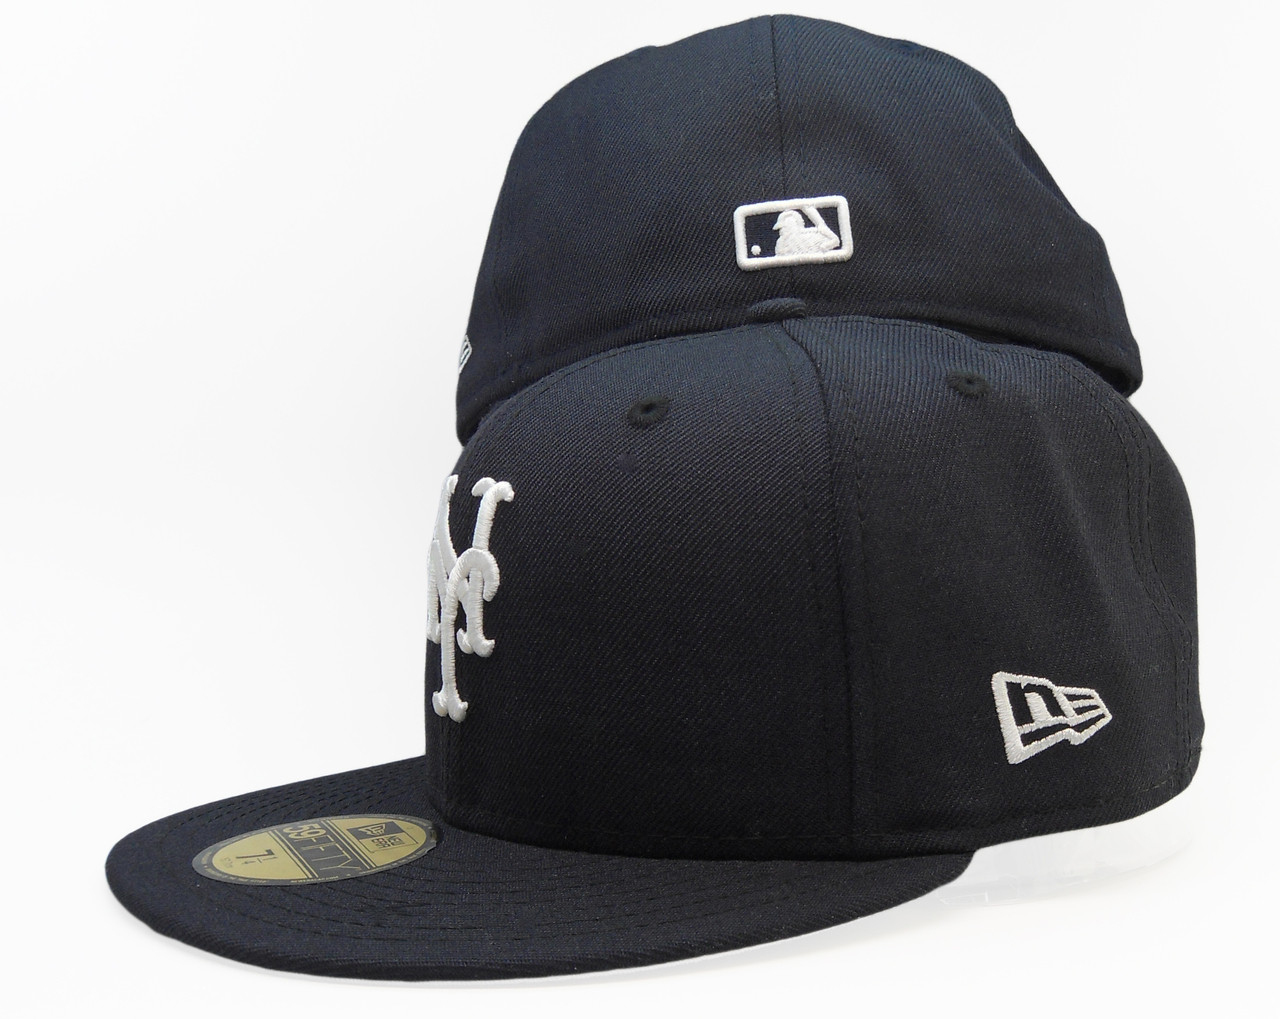 New York Mets New Era 59Fifty Fitted Hat - Navy Blue 9dbc65a9152